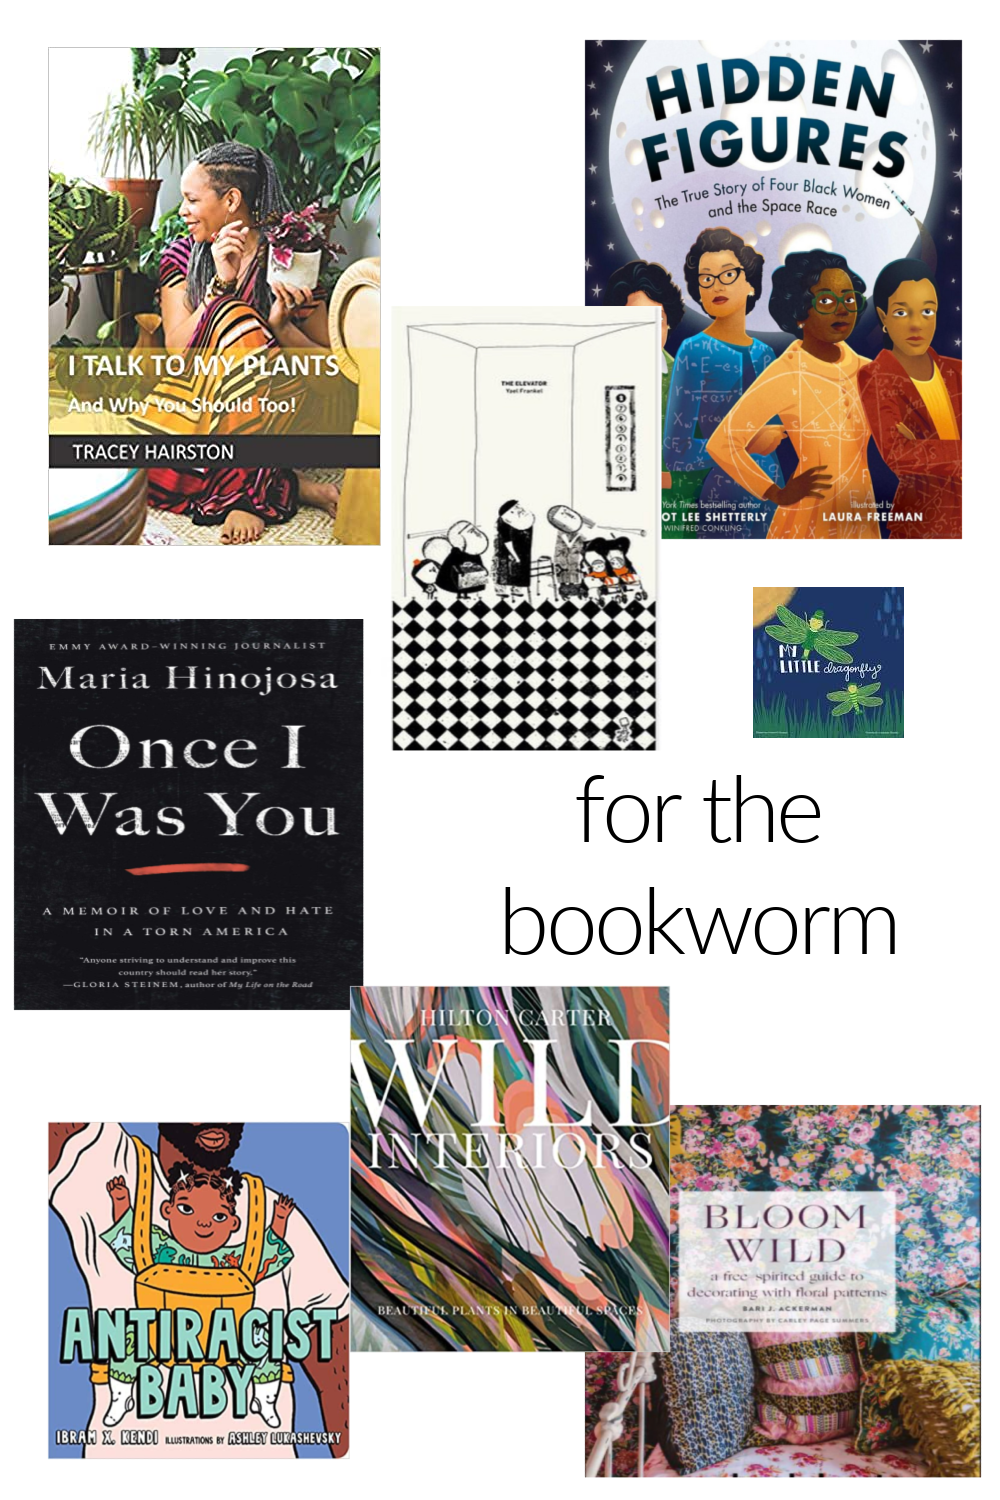 HOLIDAY 2020 GIFT GUIDE: FOR THE BOOKWORM